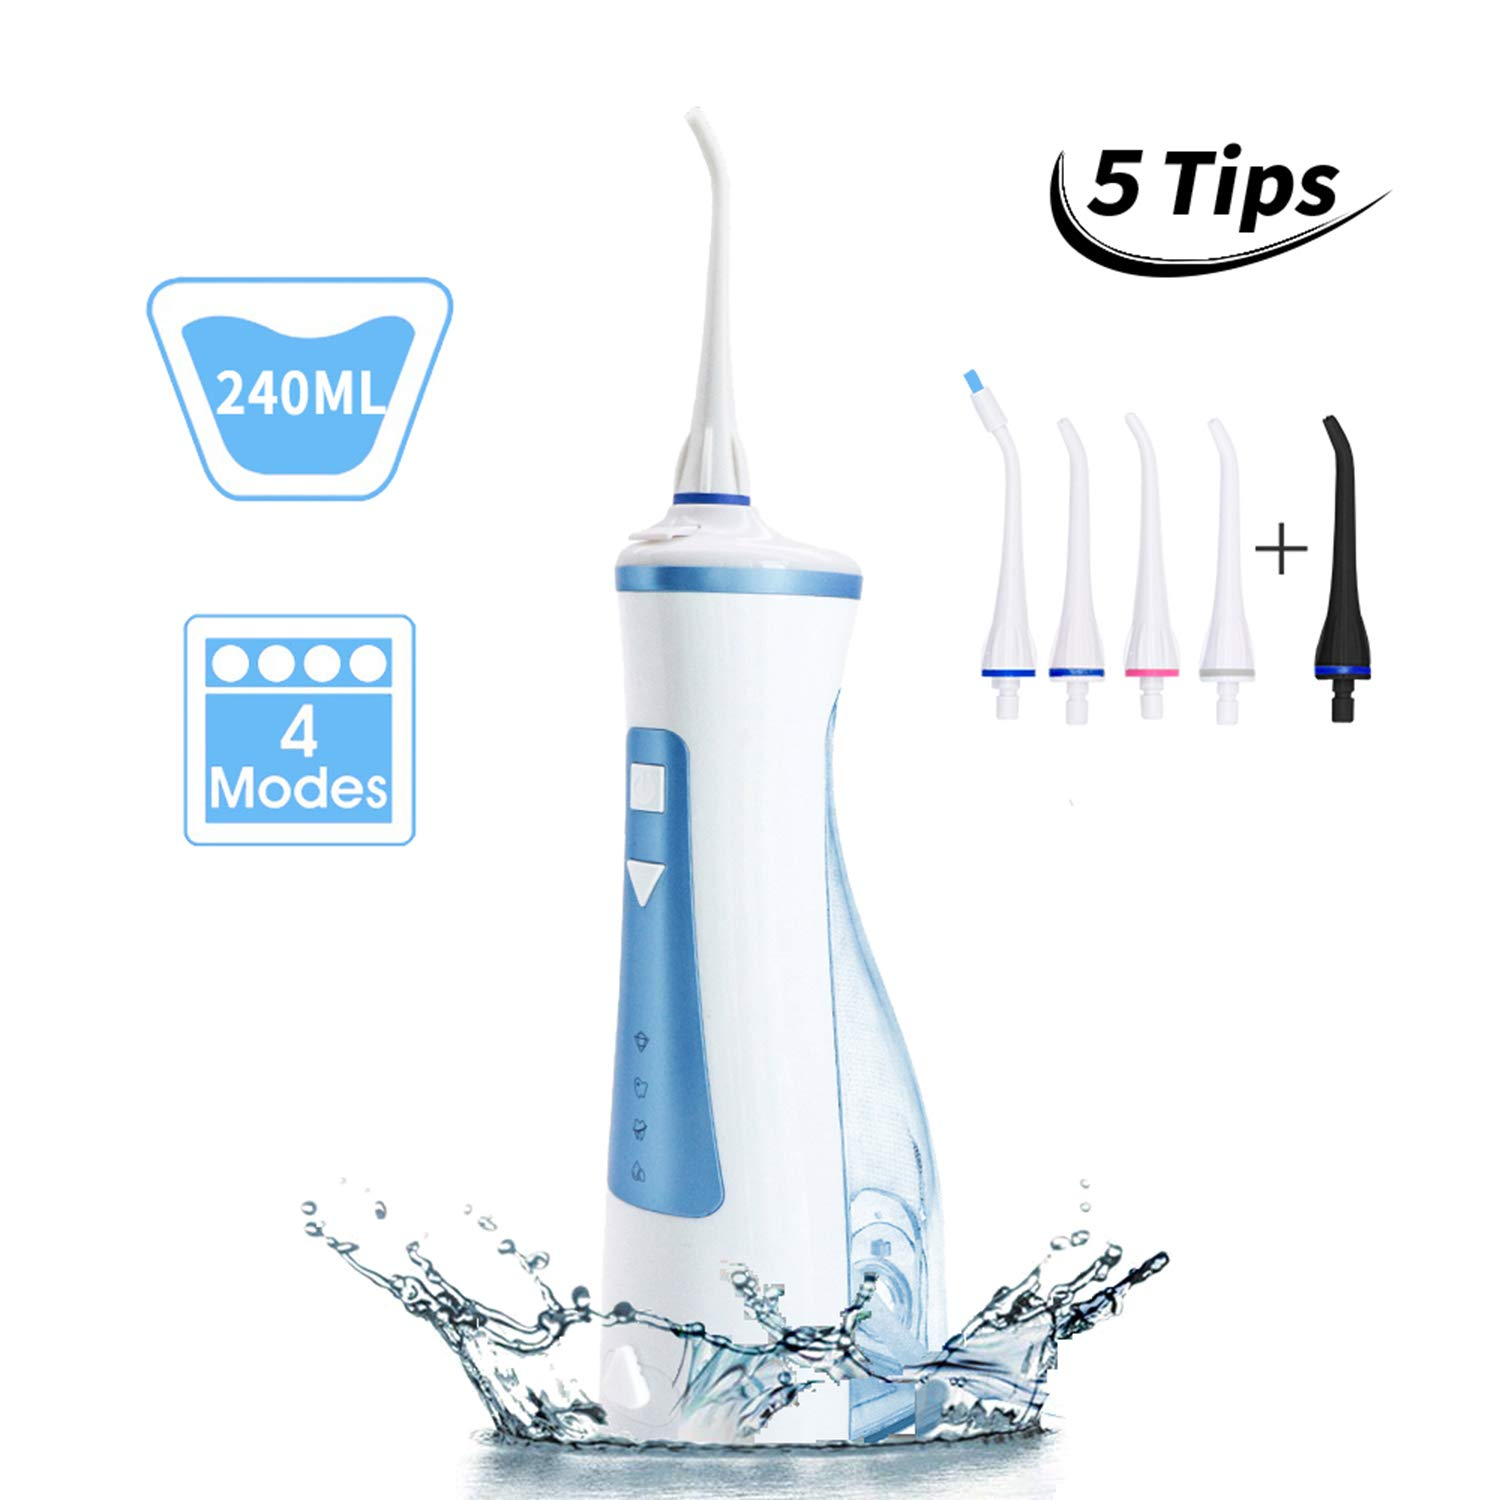 Water Flosser Cordless Oral Irrigator – NTONPOWER 240ML Professional Portable Teeth Cleaner, USB Rechargeable, 4 Modes 5 Tips, IPX7 Waterproof, High-frequency Pulsation for Braces Bridges Care